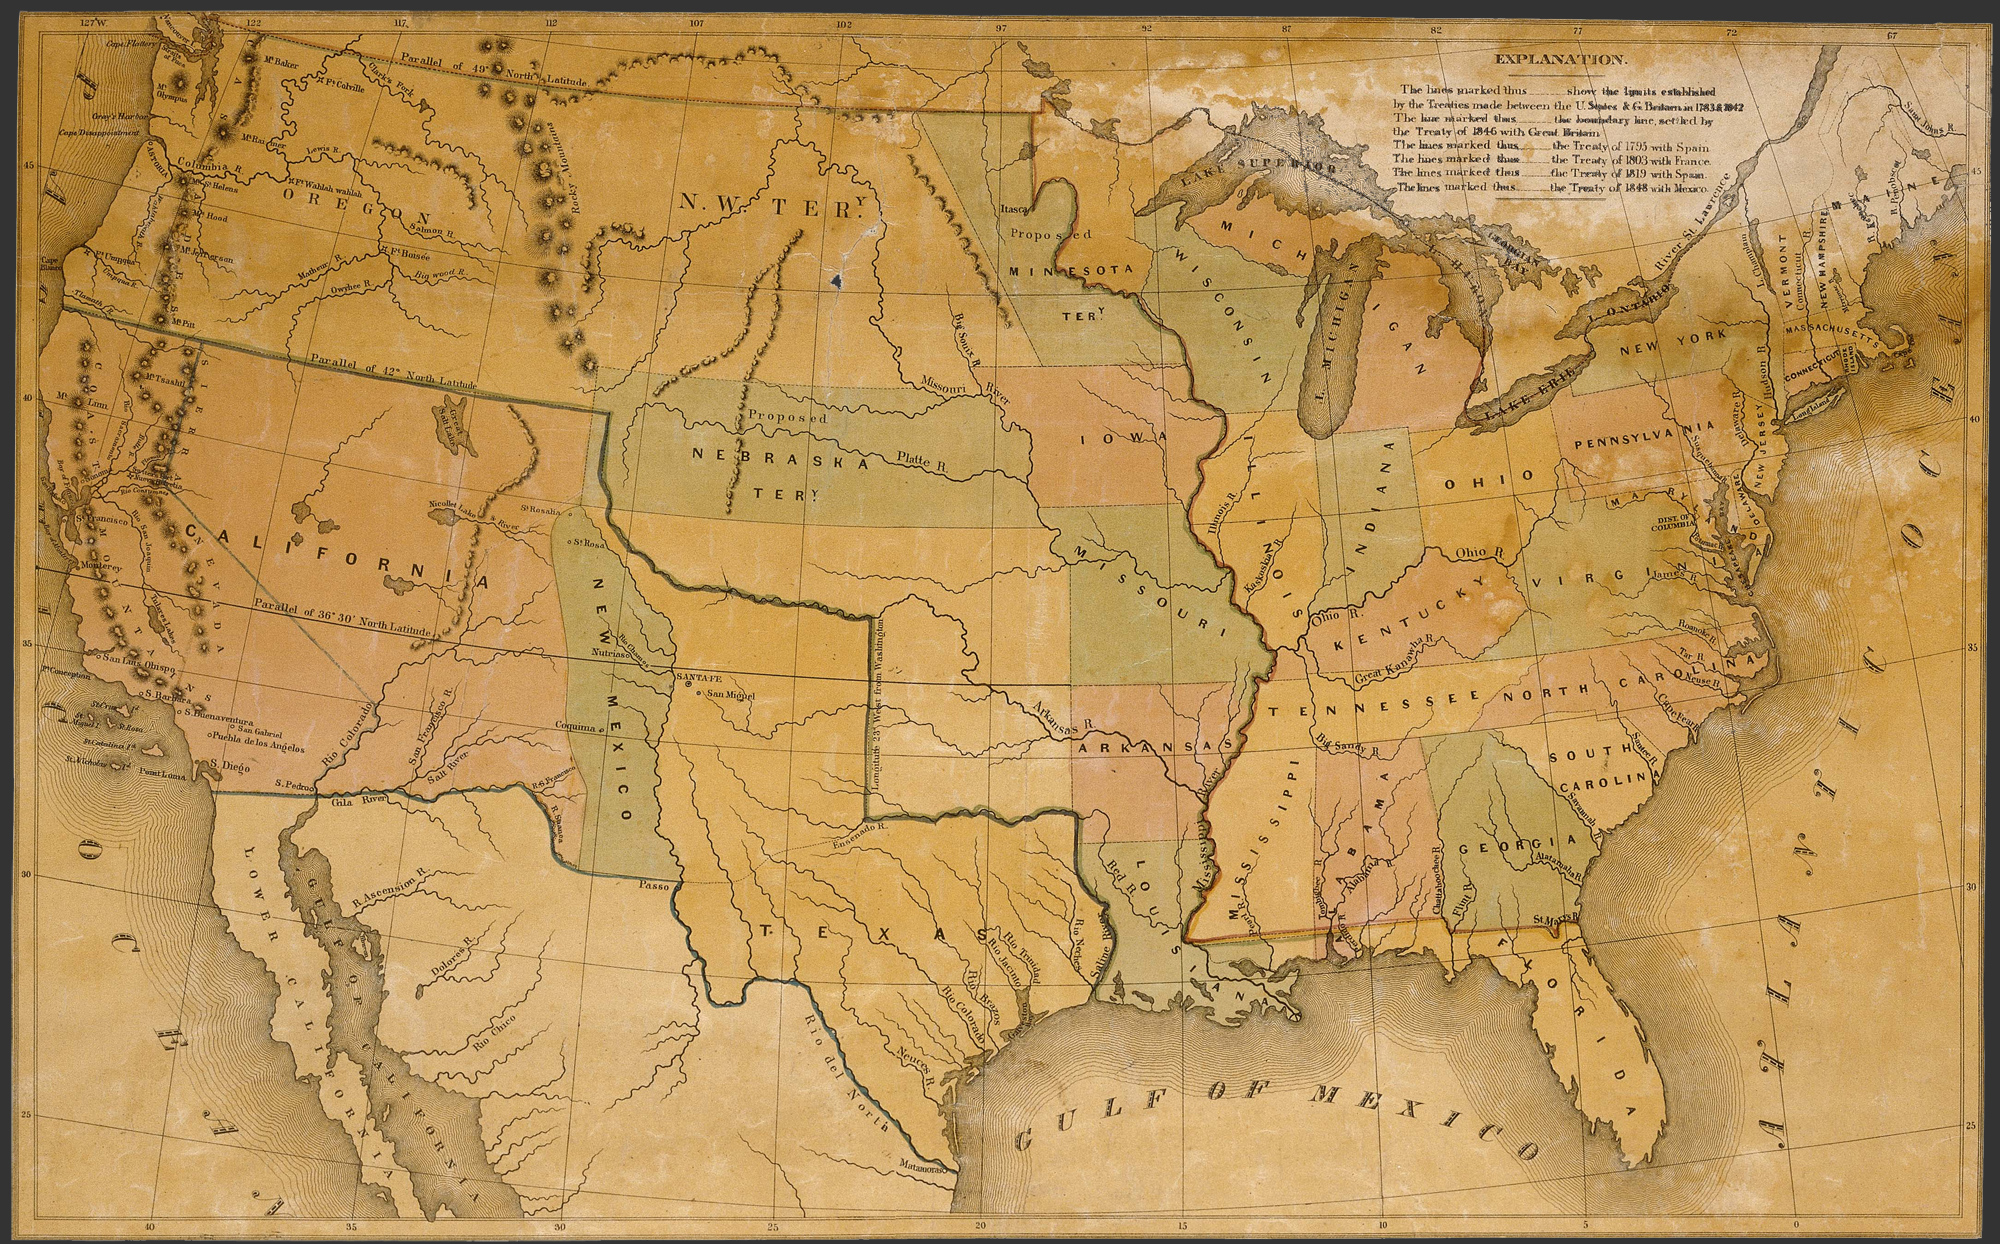 Map of the United States, 1848